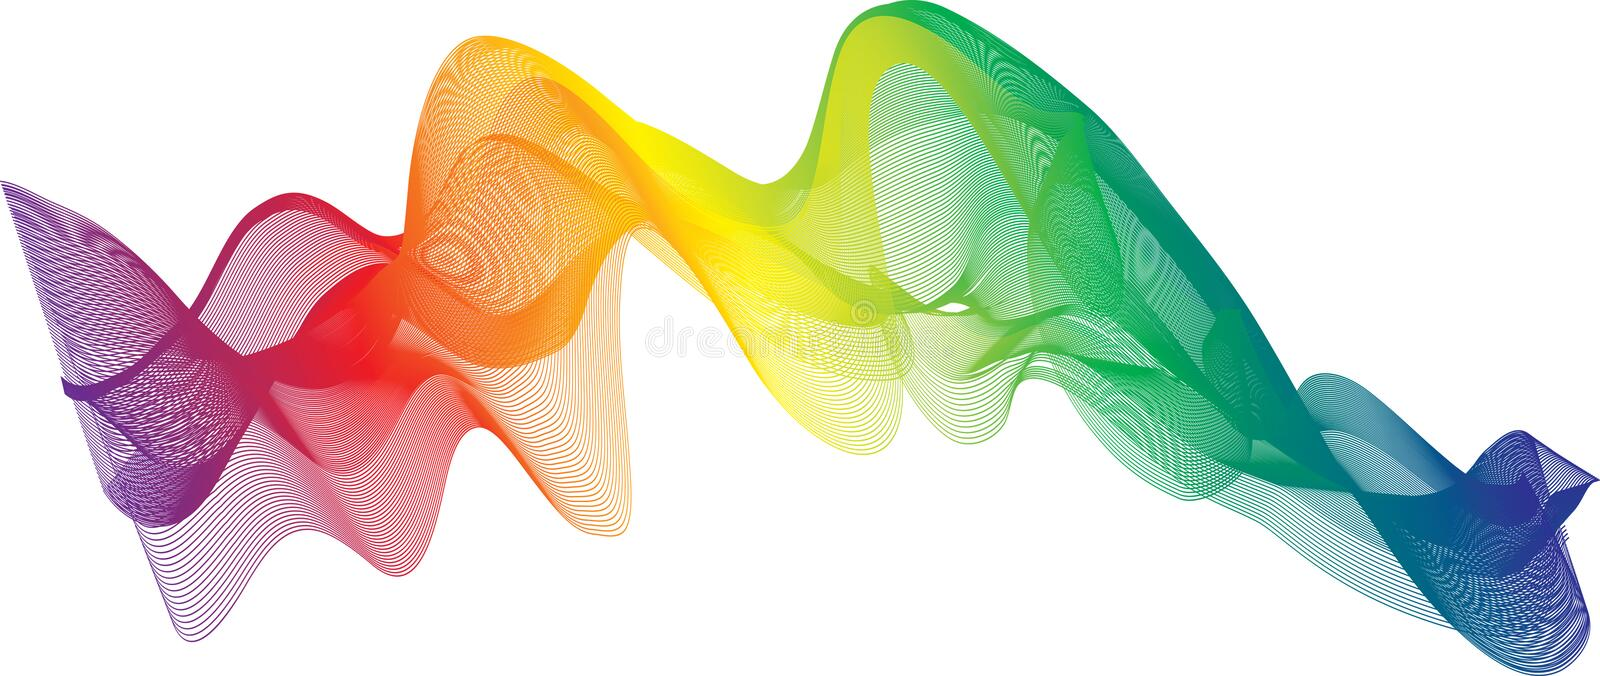 Abstract wave vector background, rainbow waved lines royalty free illustration